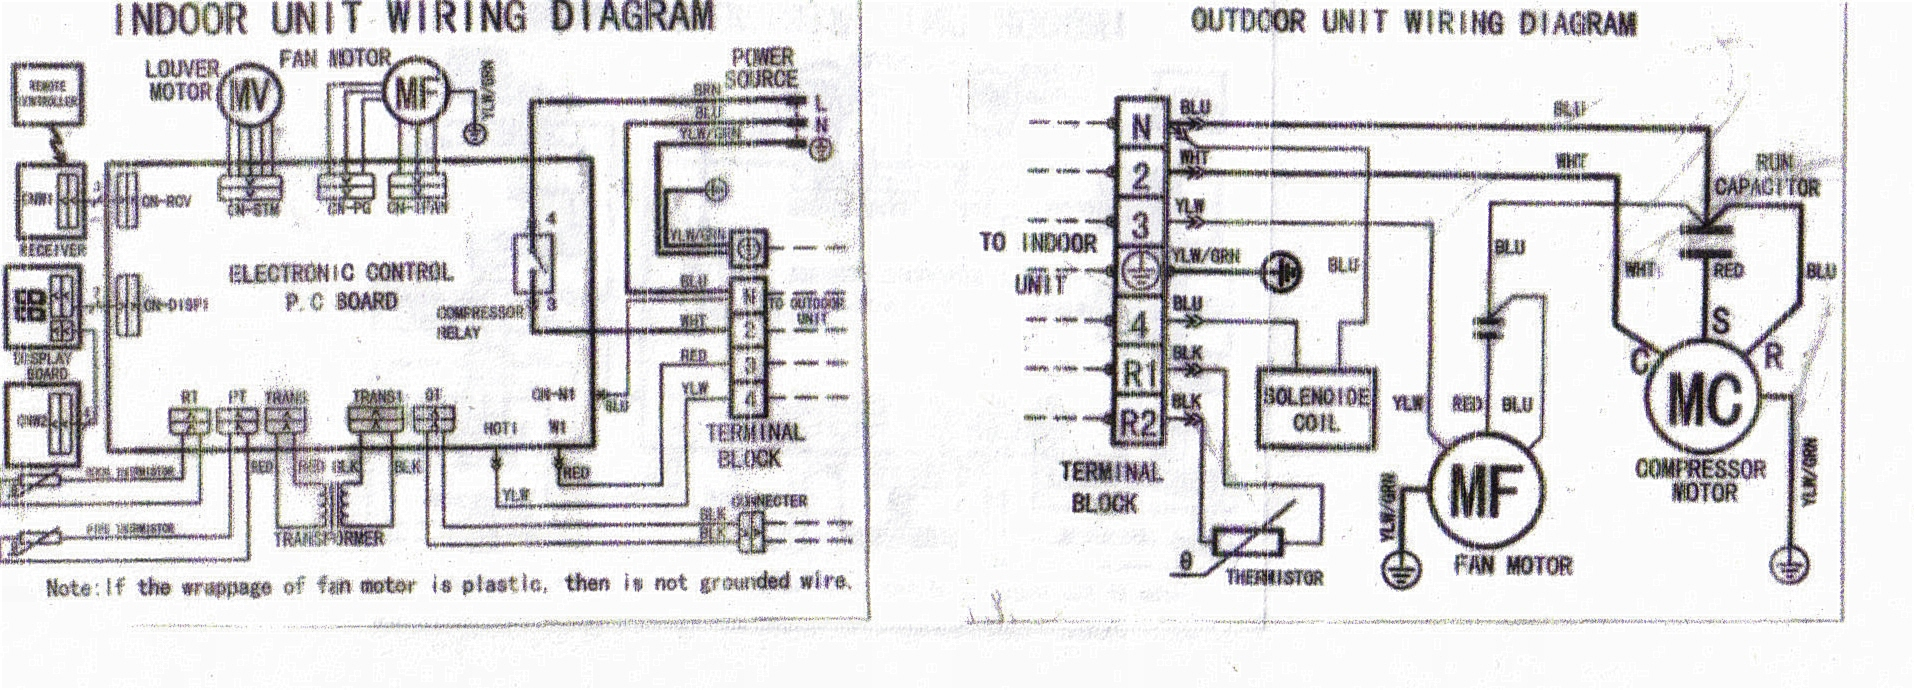 Solucionado The Compressor Motor Does Not Open Indoor Unit Outdoor Wiring Diagrams If Colleague Carmax Is Possible This Poorly Connected Check With